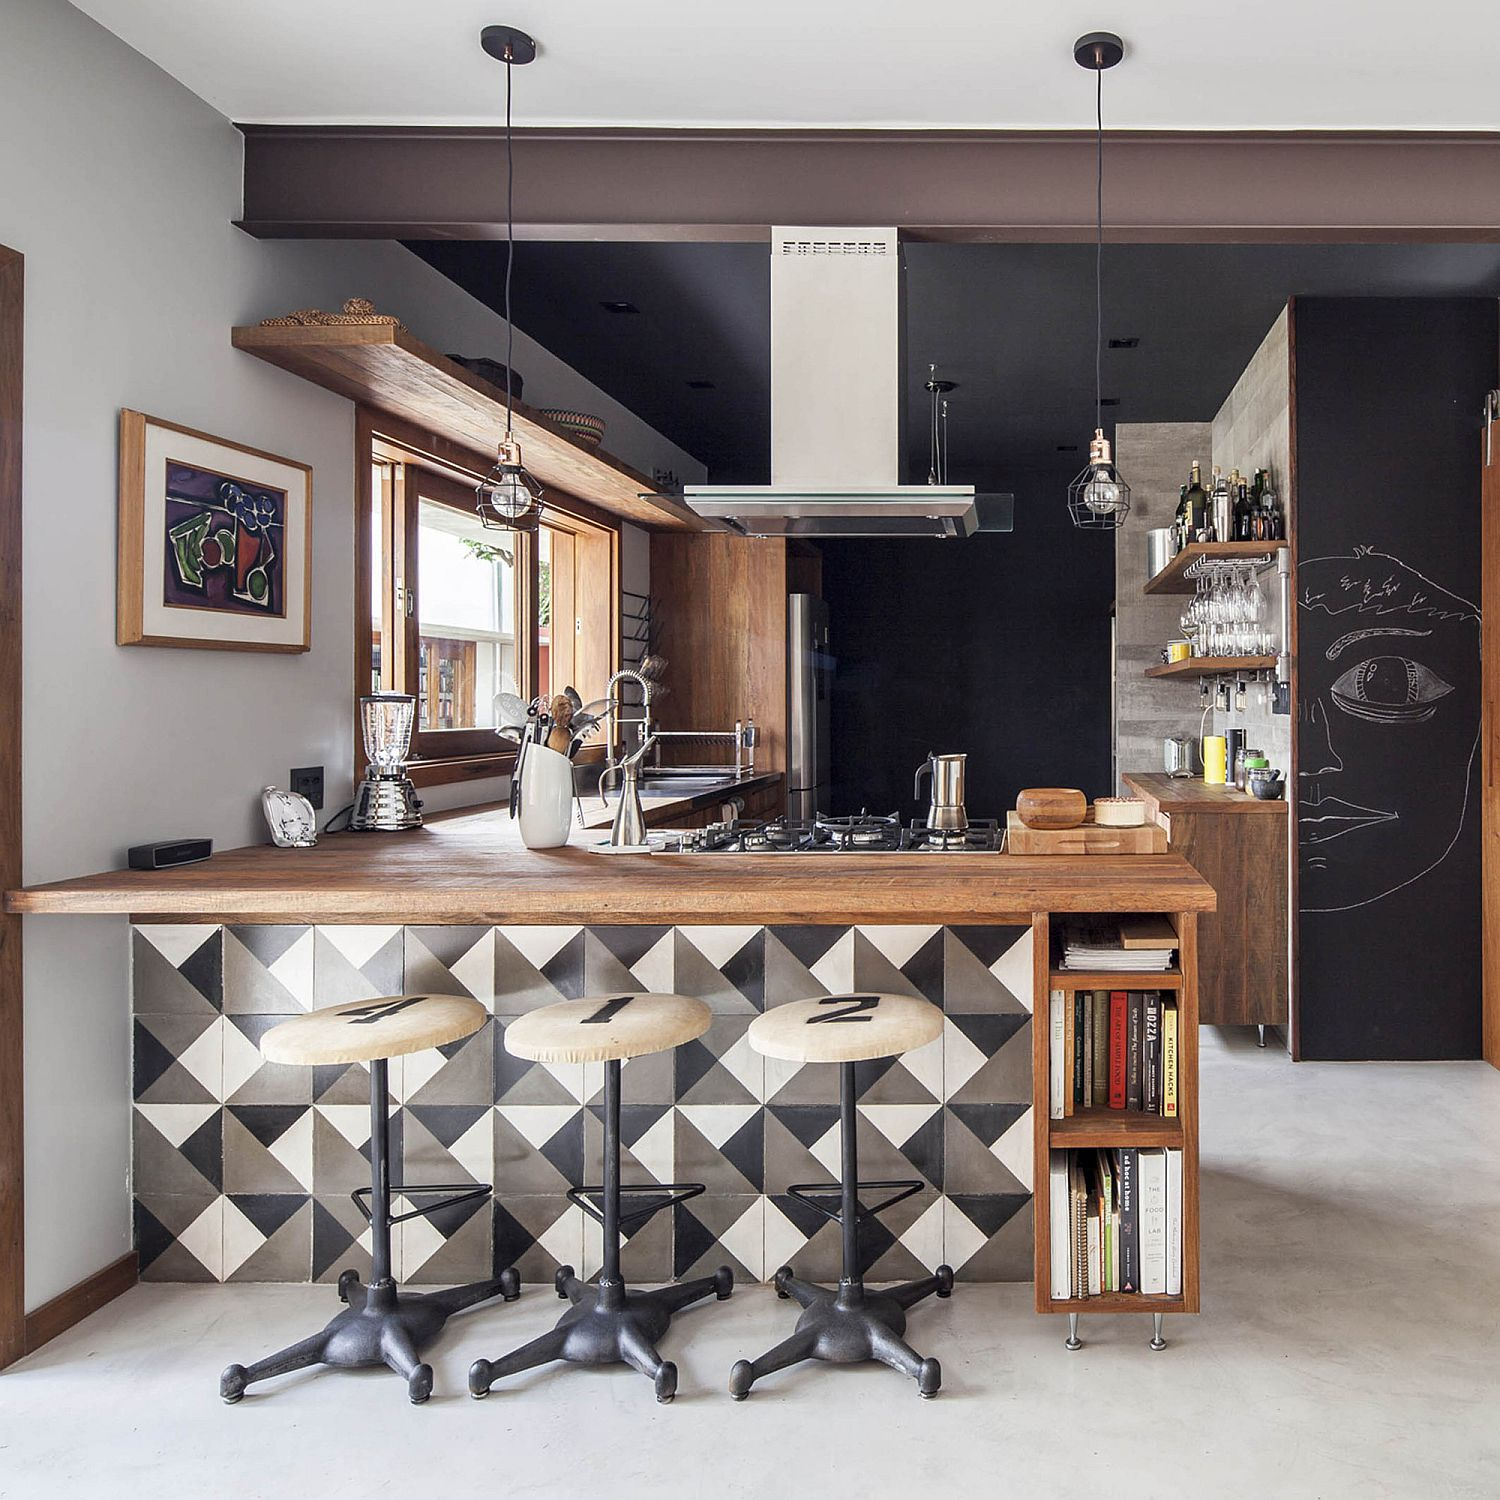 Modern-kitchen-with-chalkboard-walls-wooden-counters-and-geometric-tiles